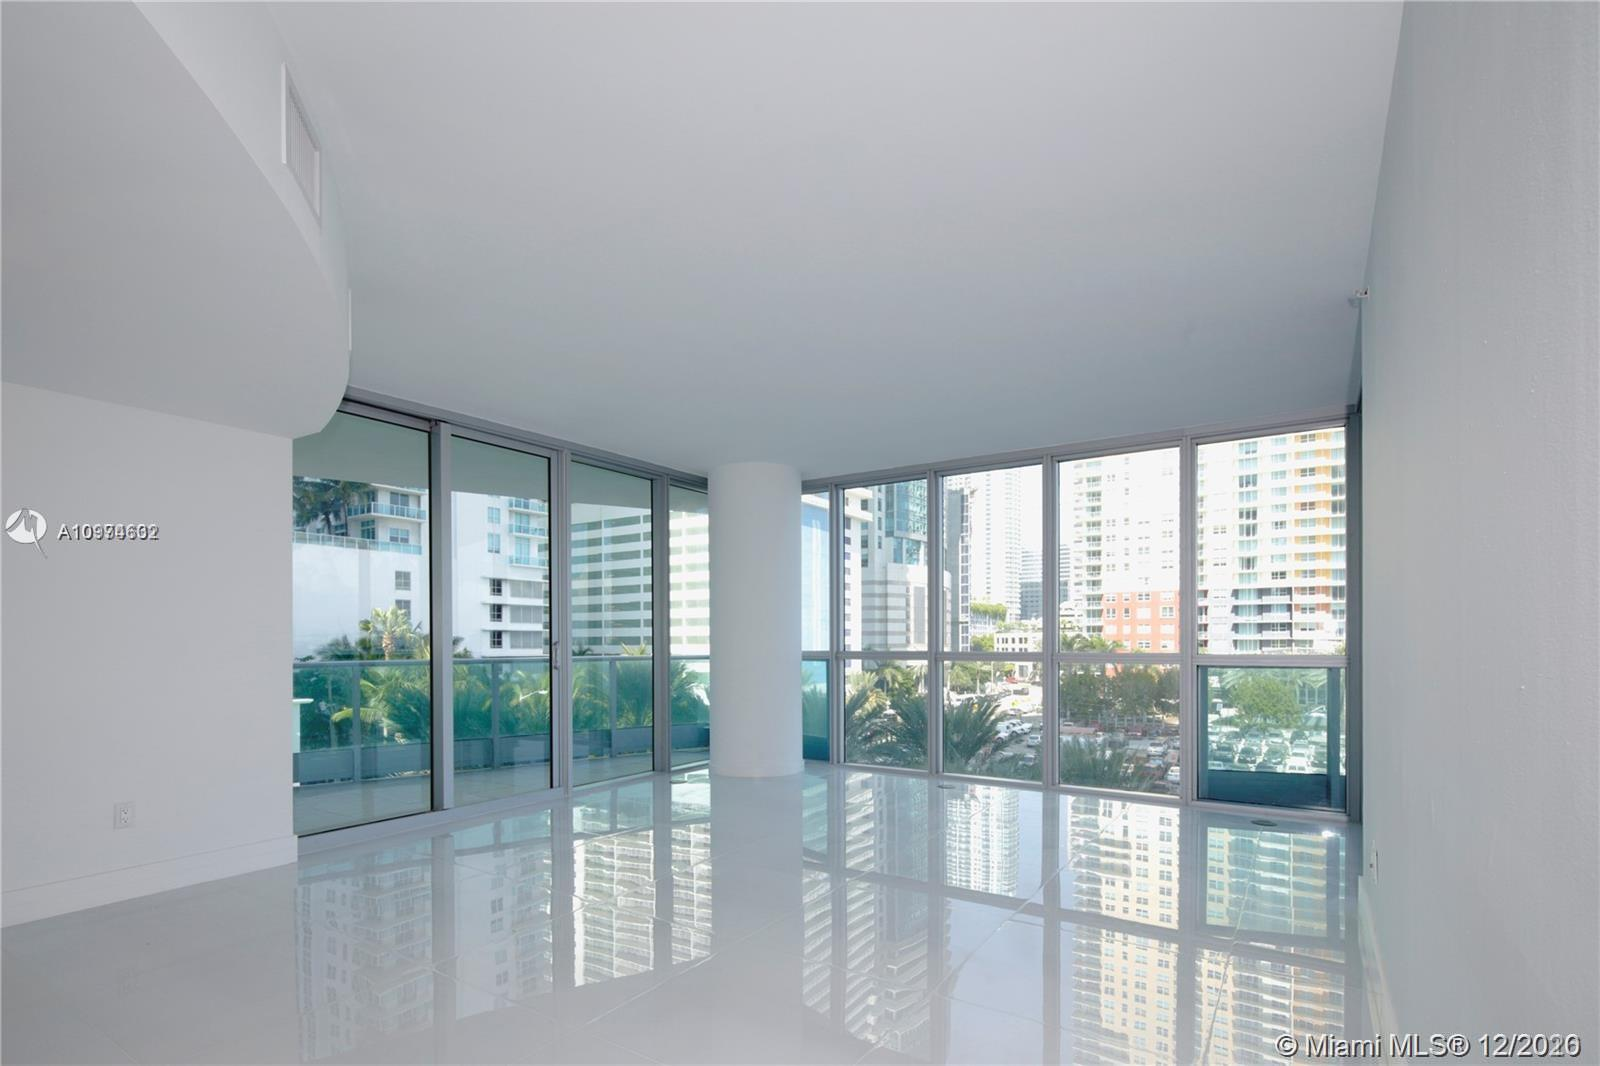 Exclusive luxury apartment in the heart of Brickell district. City & Bay views. 9'high ceilings. New porcelain & marble floors throughout the unit. New Kitchen w/ top-of-the-line appliances, custom cabinets and arabescato marble counters. Beautiful master bath w/spa tub & separate shower. Outstanding amenities include 24 hour concierge & valet, rooftop sky-lounge w/breathtaking bay & ocean view, health spa w/sauna, steam room, infinity water pool, kids' pool, fitness & business center & restaurant. RENTED UNTIL JULY 31 @ 3,600. EXCELLENT CHOICE FOR INVESTOR - NO VACANCY GAP.